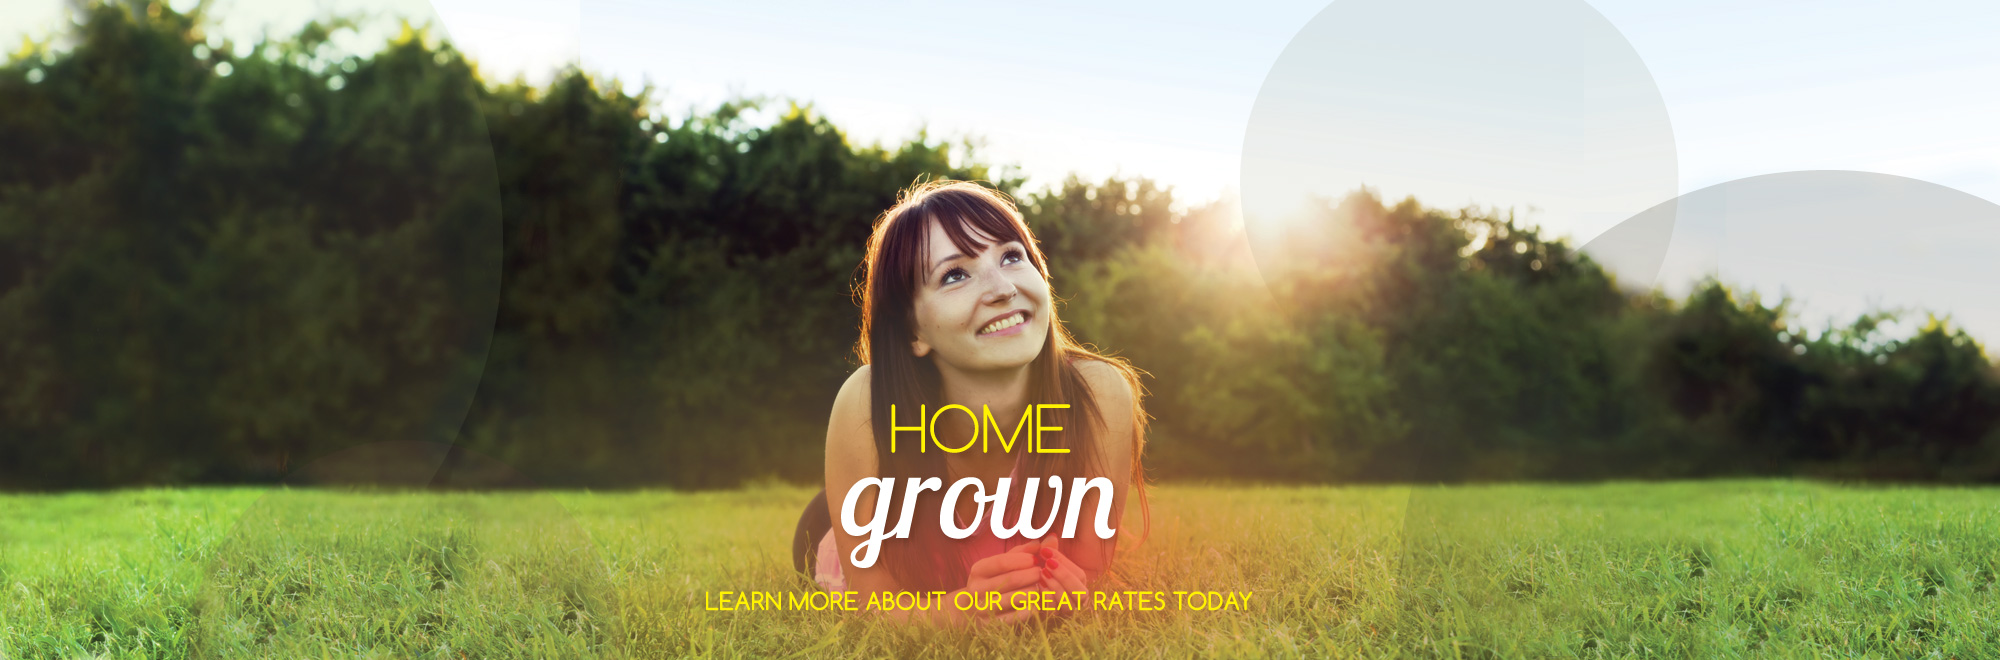 Home Grown Loans - banner image